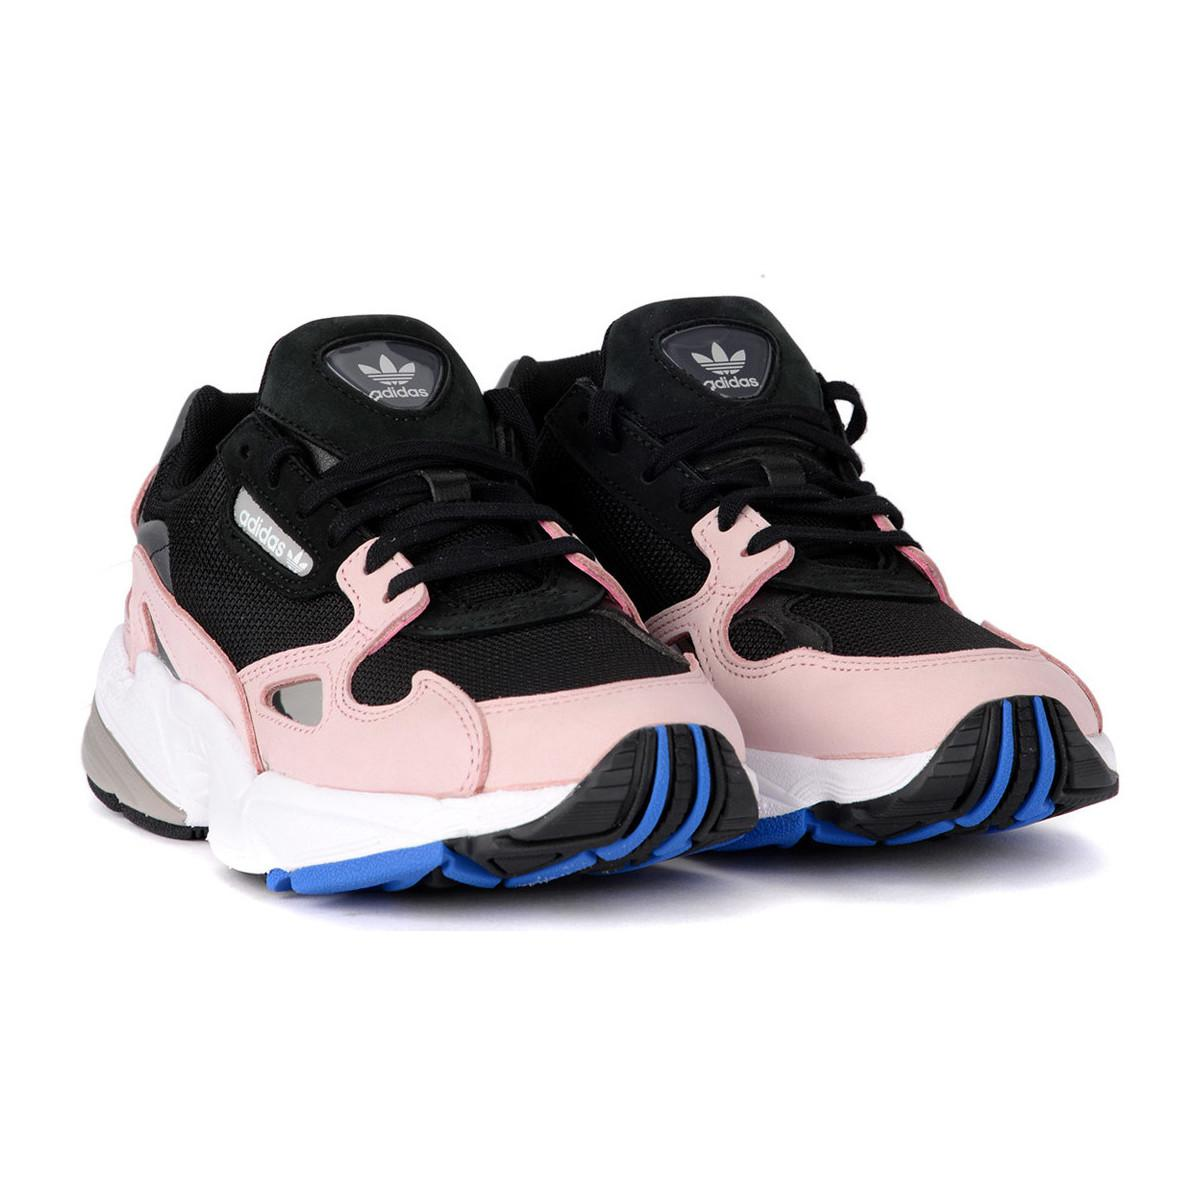 timeless design a7a4d cb37c adidas Sneaker Falcon In Mesh Nero E Suede Rosa Women s Shoes ...